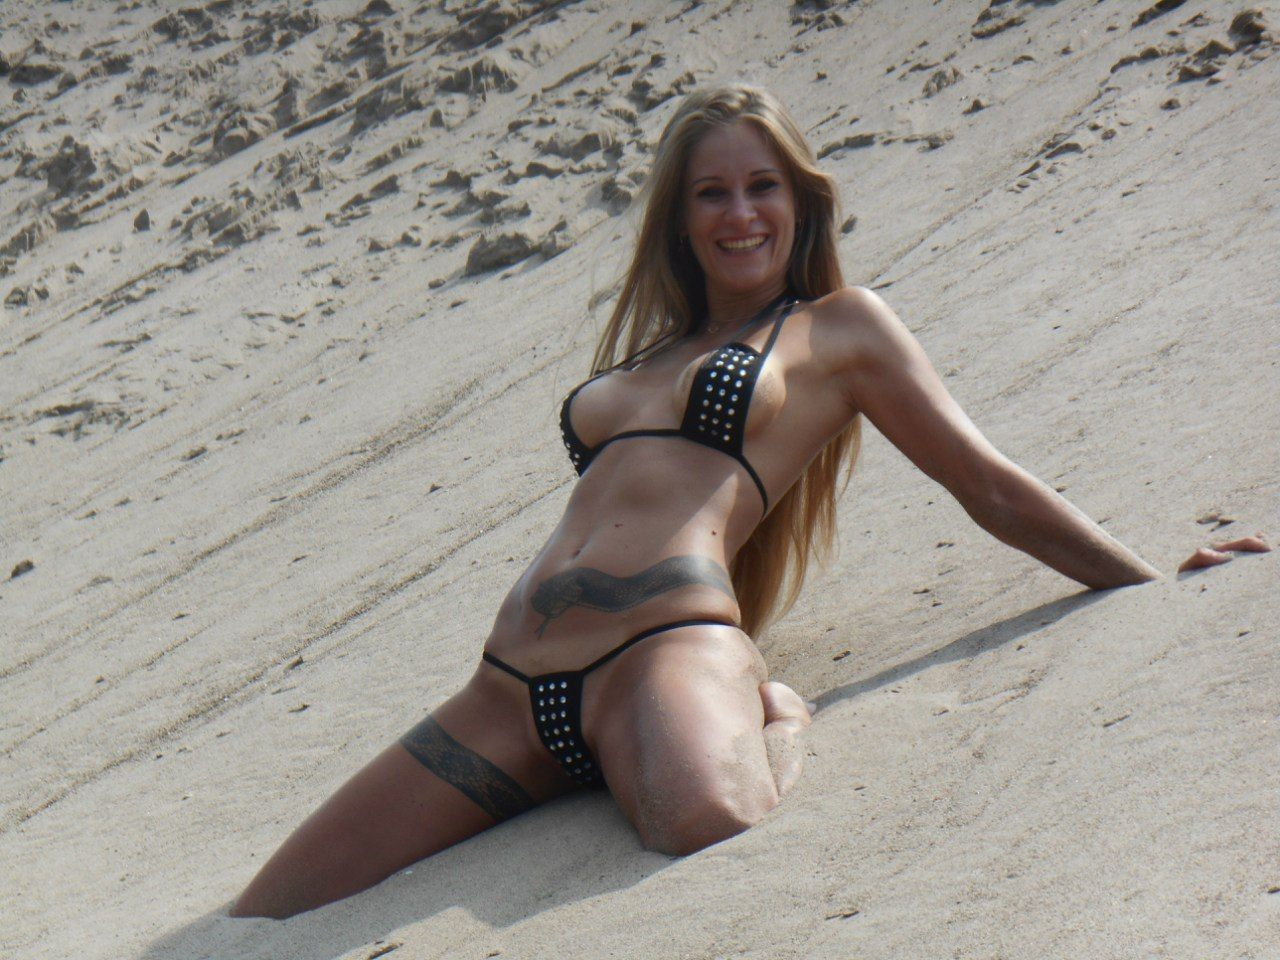 Happy girl with tattoo on the beach, Sexiest photos, cool girls, nice body, sexy boobs, sexy ass, beautiful girls, sexyphoto.es